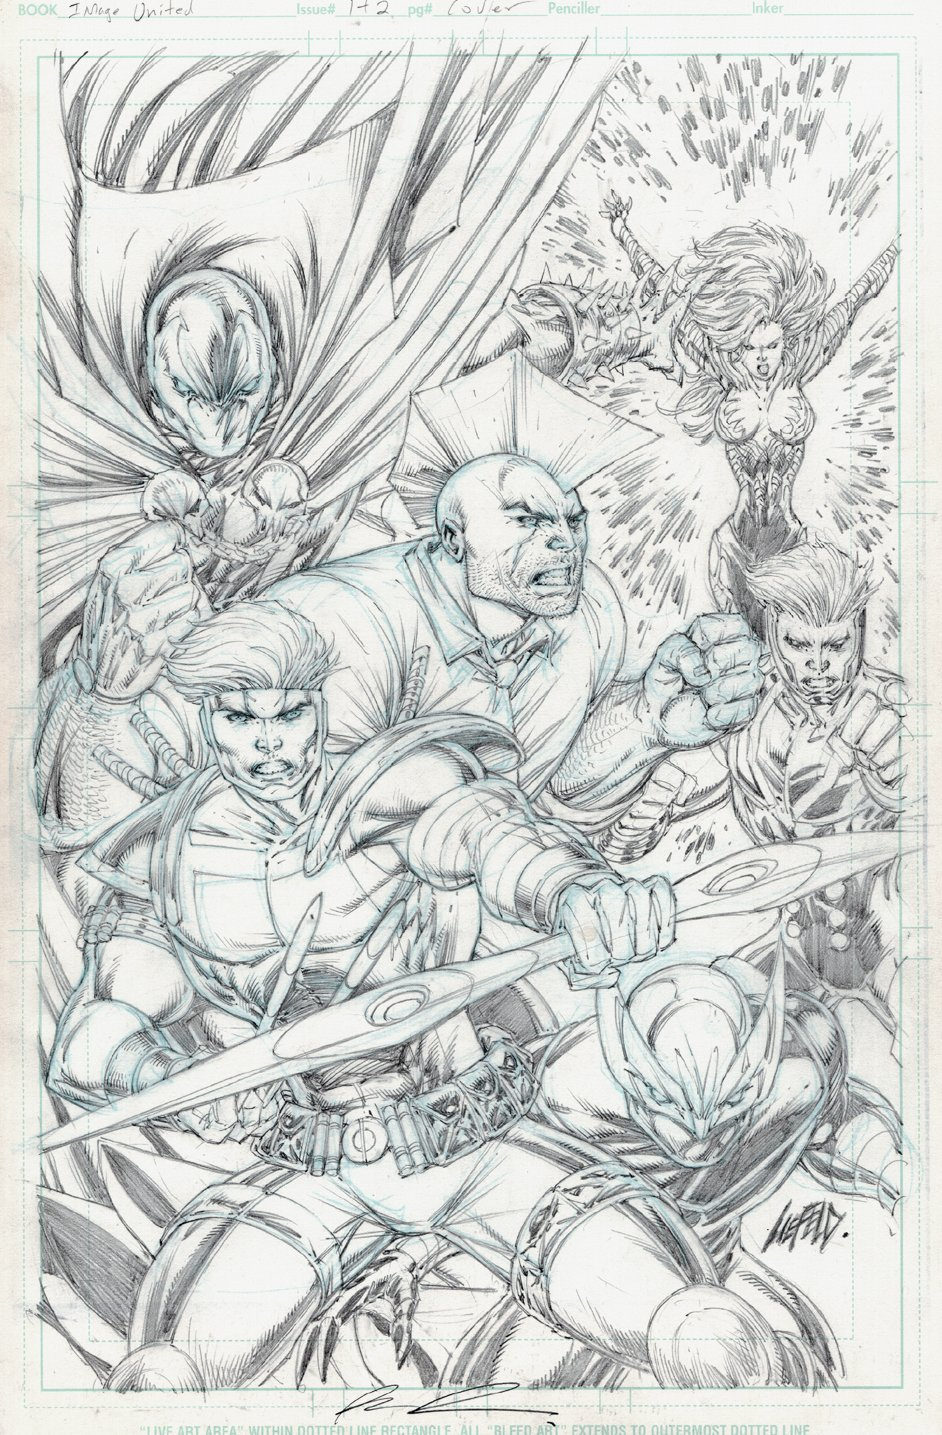 Image United #1 and #2 Covers (Spawn, Witchblade, Savage Dragon, Shaft, Shadowhawk, Fortress) 2009